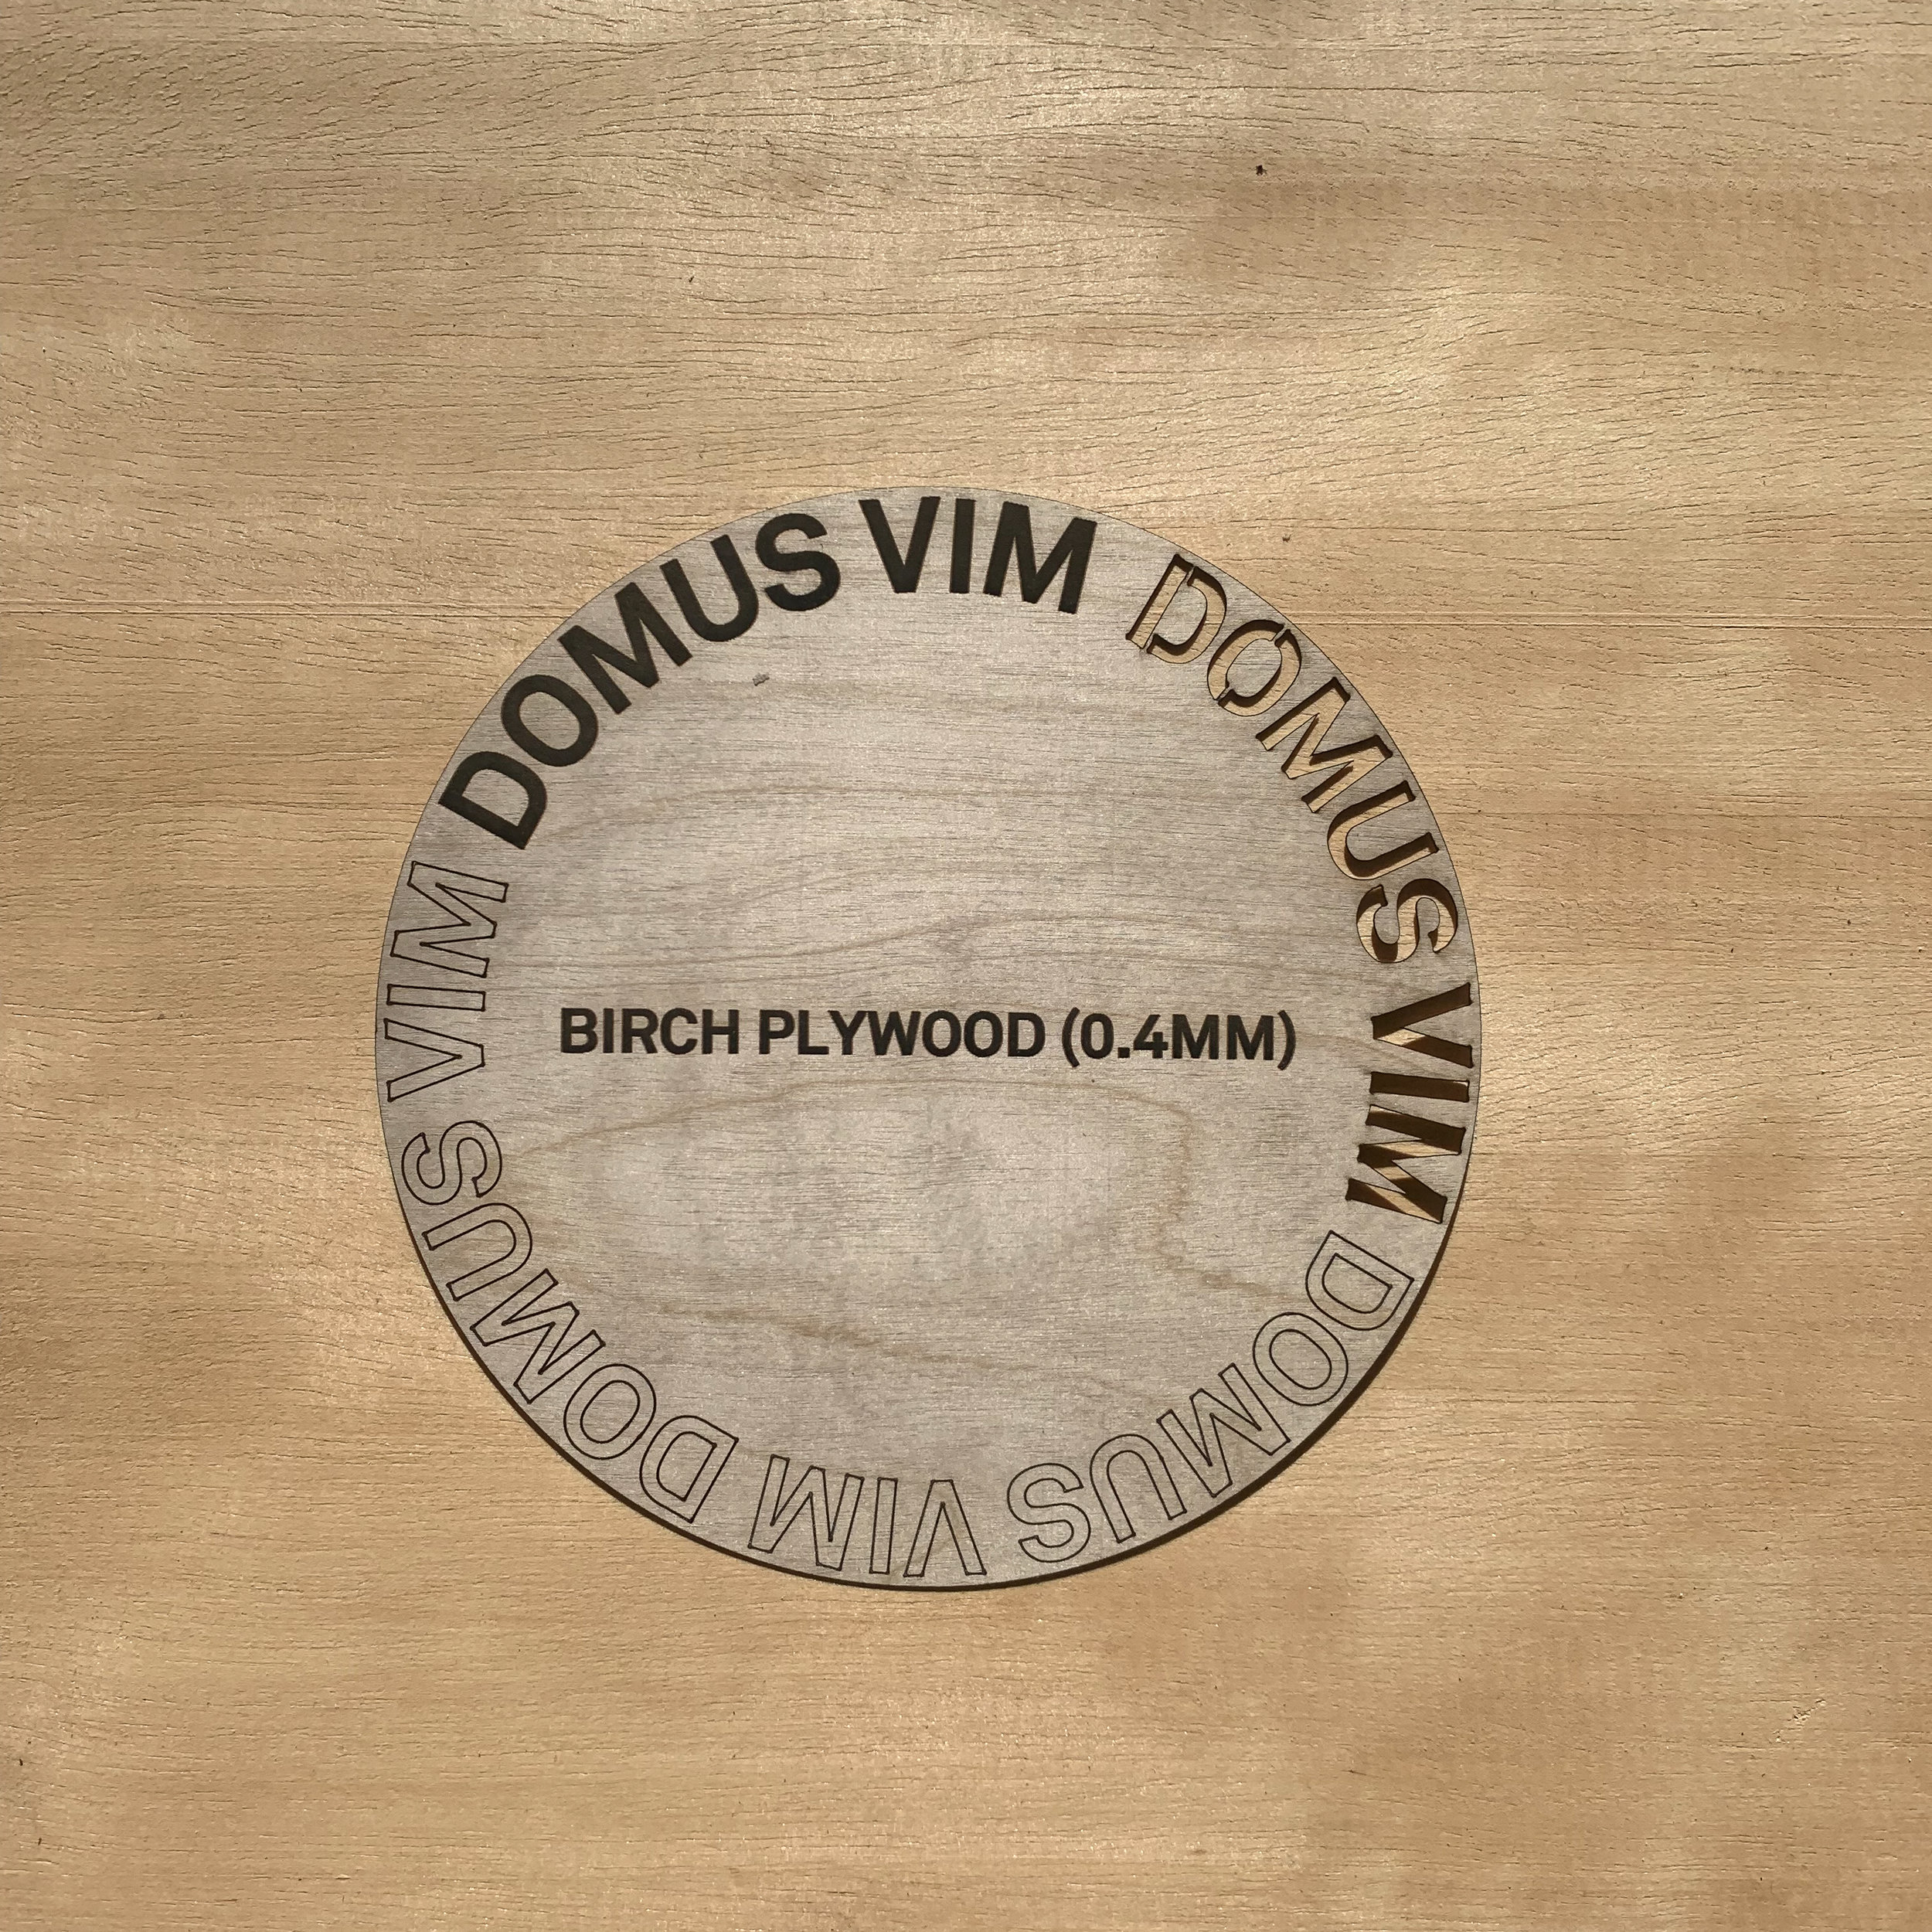 Birch Plywood 0.4mm